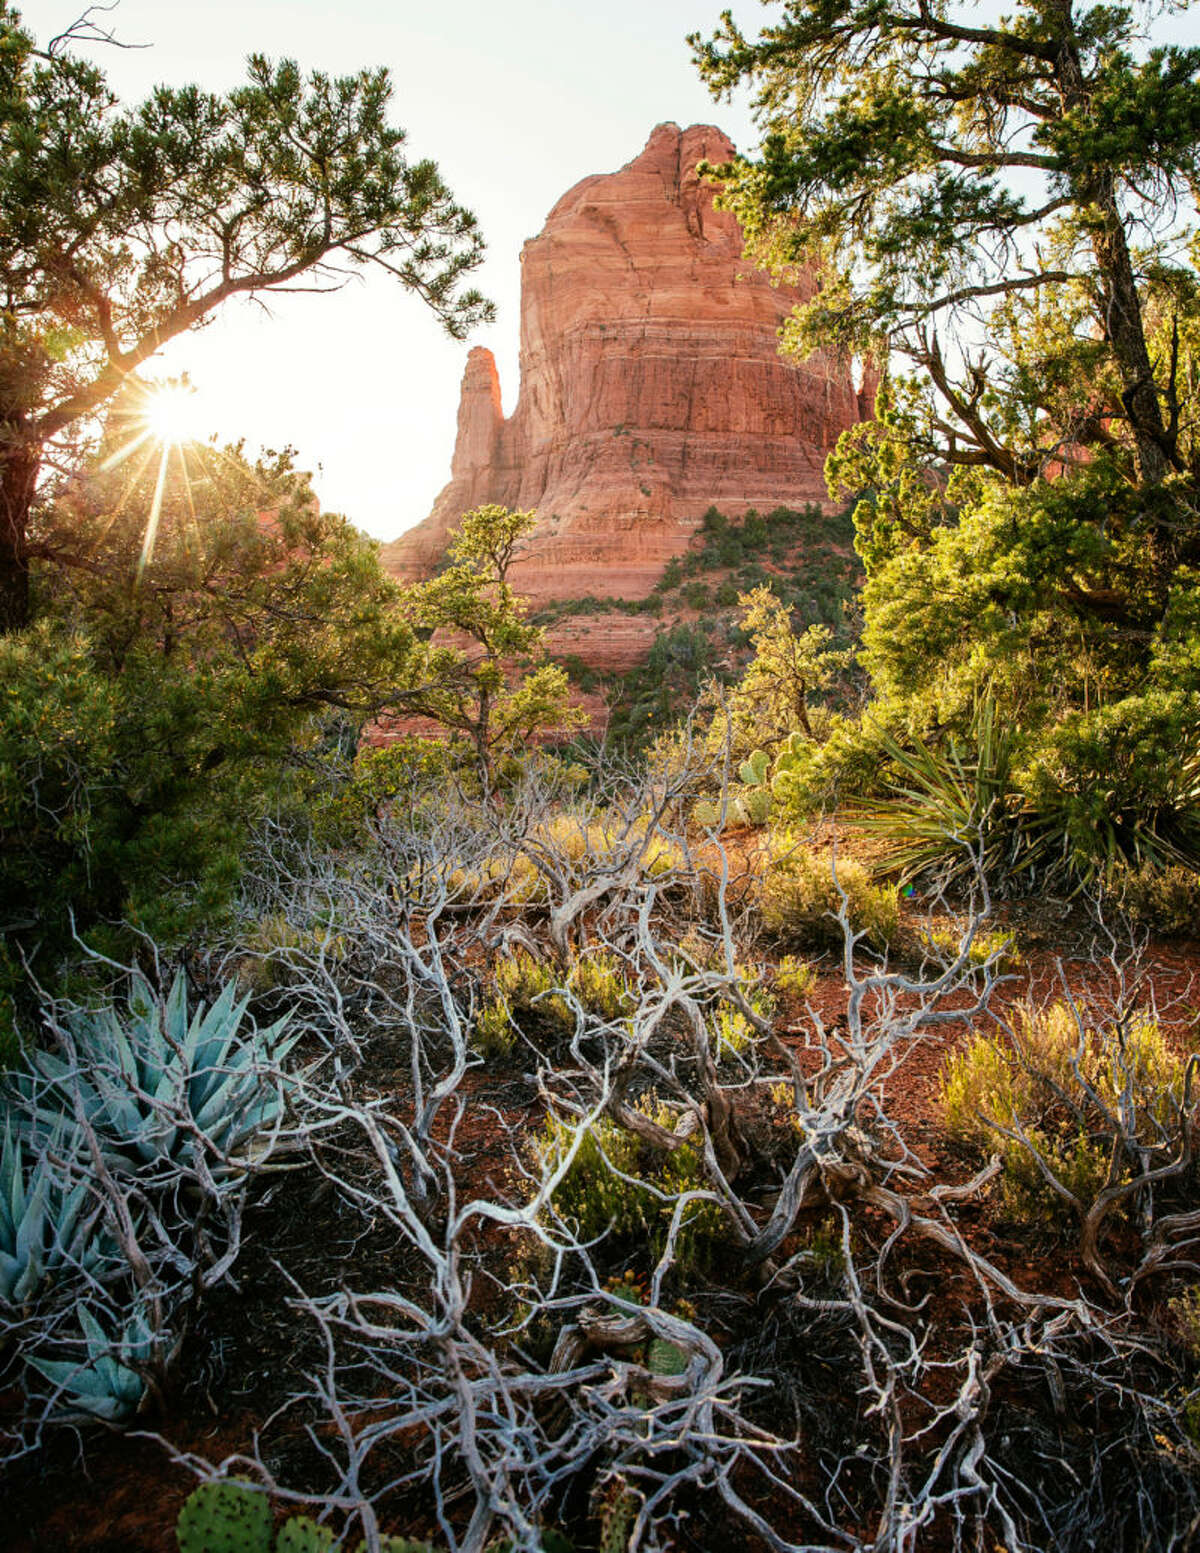 Sedona, AZ This red-rock wonderland has it all. Vortex seekers can soak in the sacred energy (and crystal stores), fitness buffs can hike and bike world-class trails (Devil's Bridge Trail is a must) and vegetarians can indulge in the organic, plant-based menu at ChocolaTree. Stay at Mii Amo, the ultimate spa retreat.